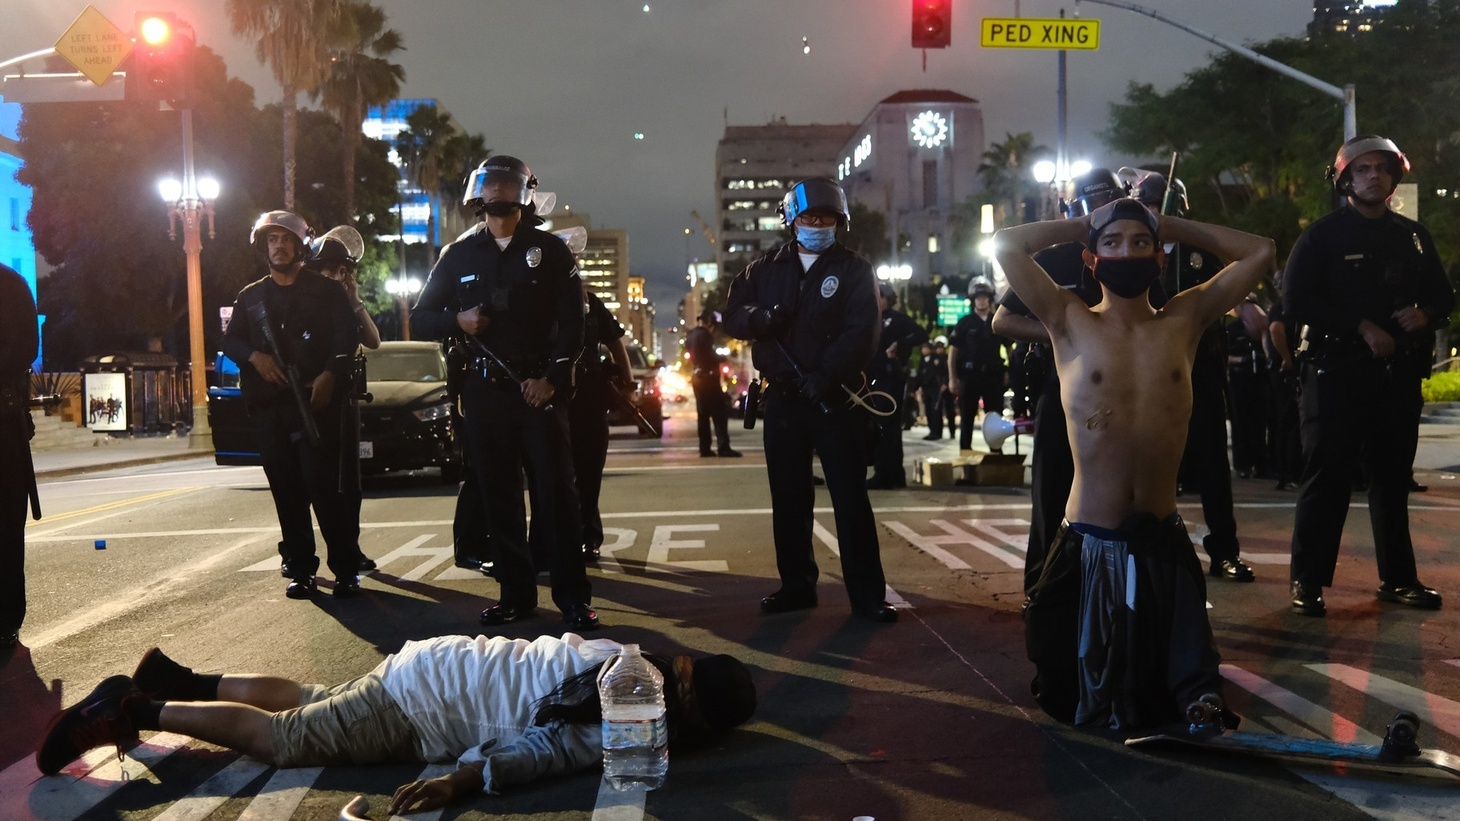 LAPD officers boxed in demonstrators who laid on the street in protest of racial injustice. Now the National Lawyers Guild of Los Angeles has filed a class action lawsuit against the LAPD for its response to protesters.